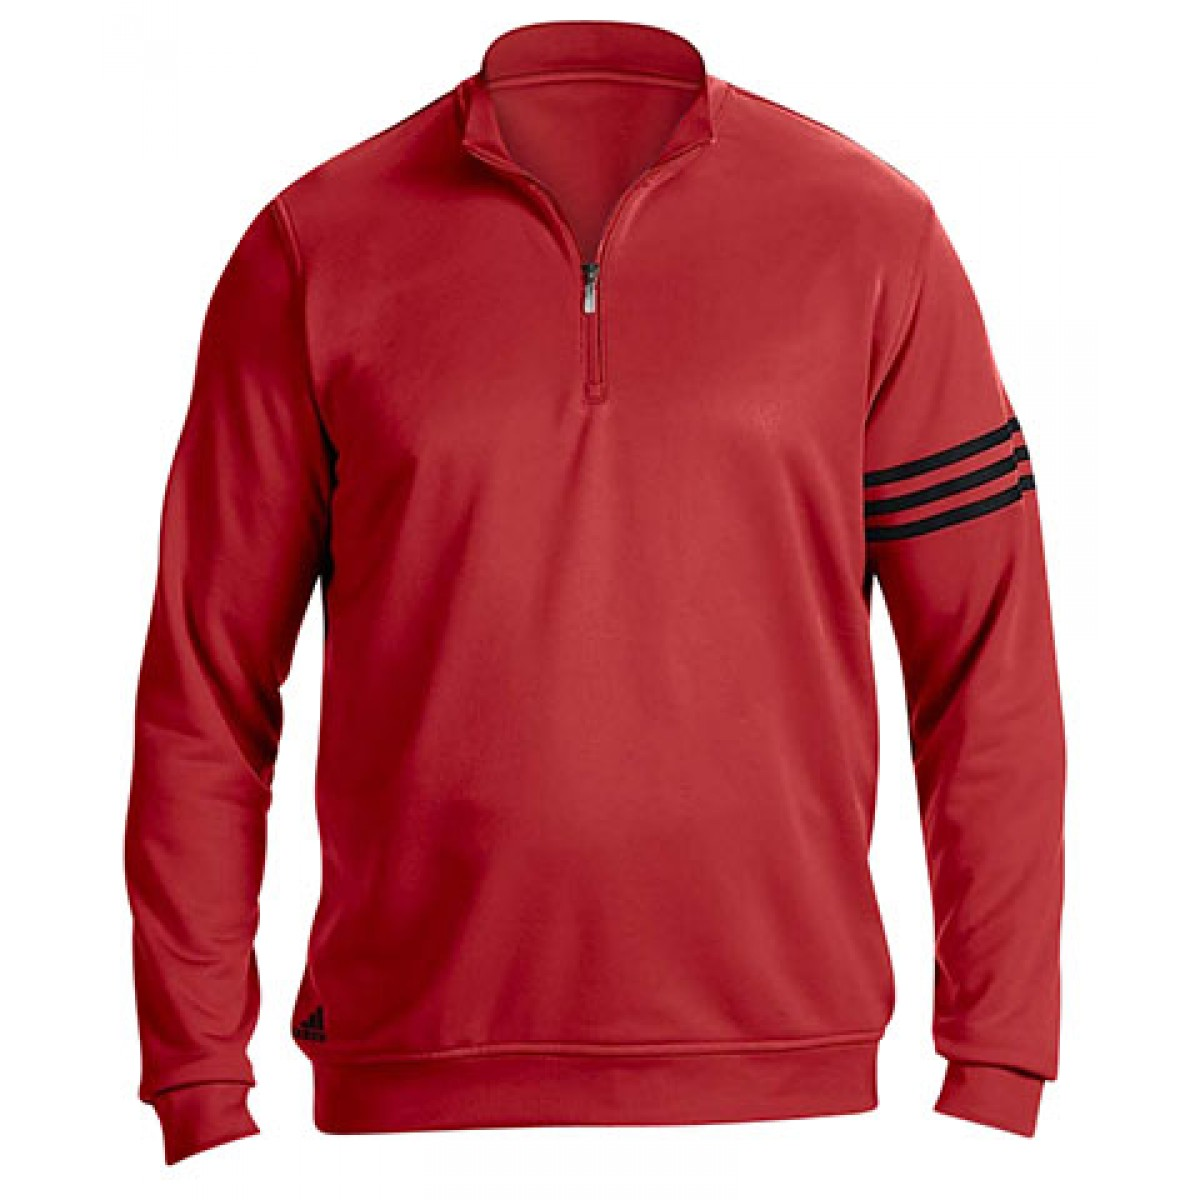 Adidas Men's 3-Stripes Pullover-Red-L